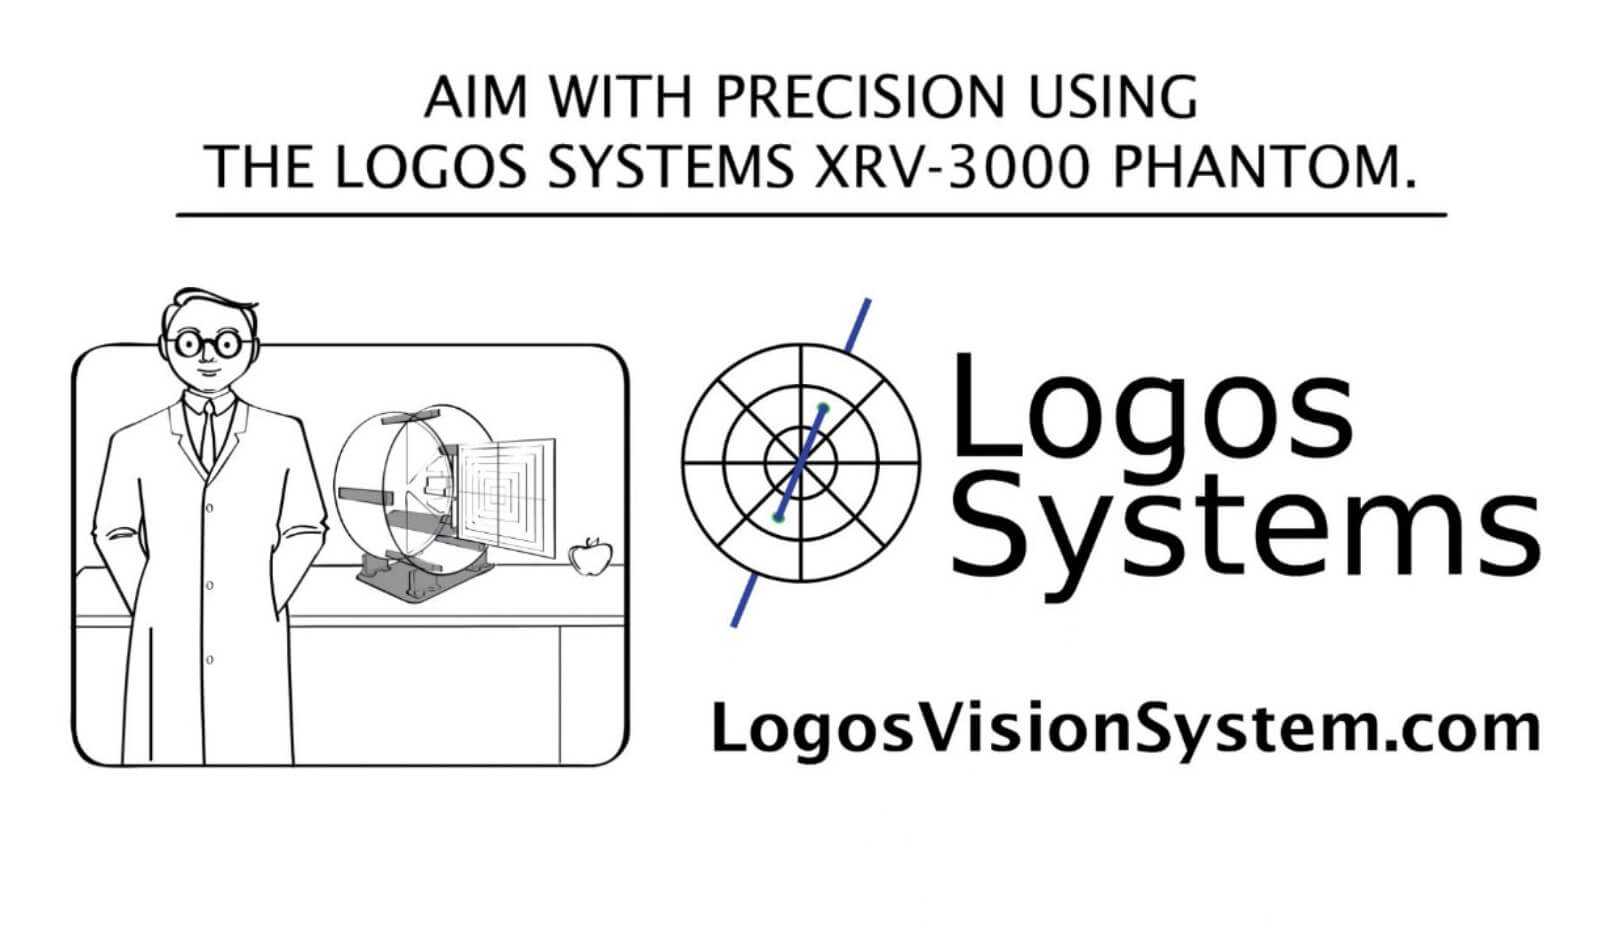 Aim with precision with the Logos Systems XRV-3000 Phantom.